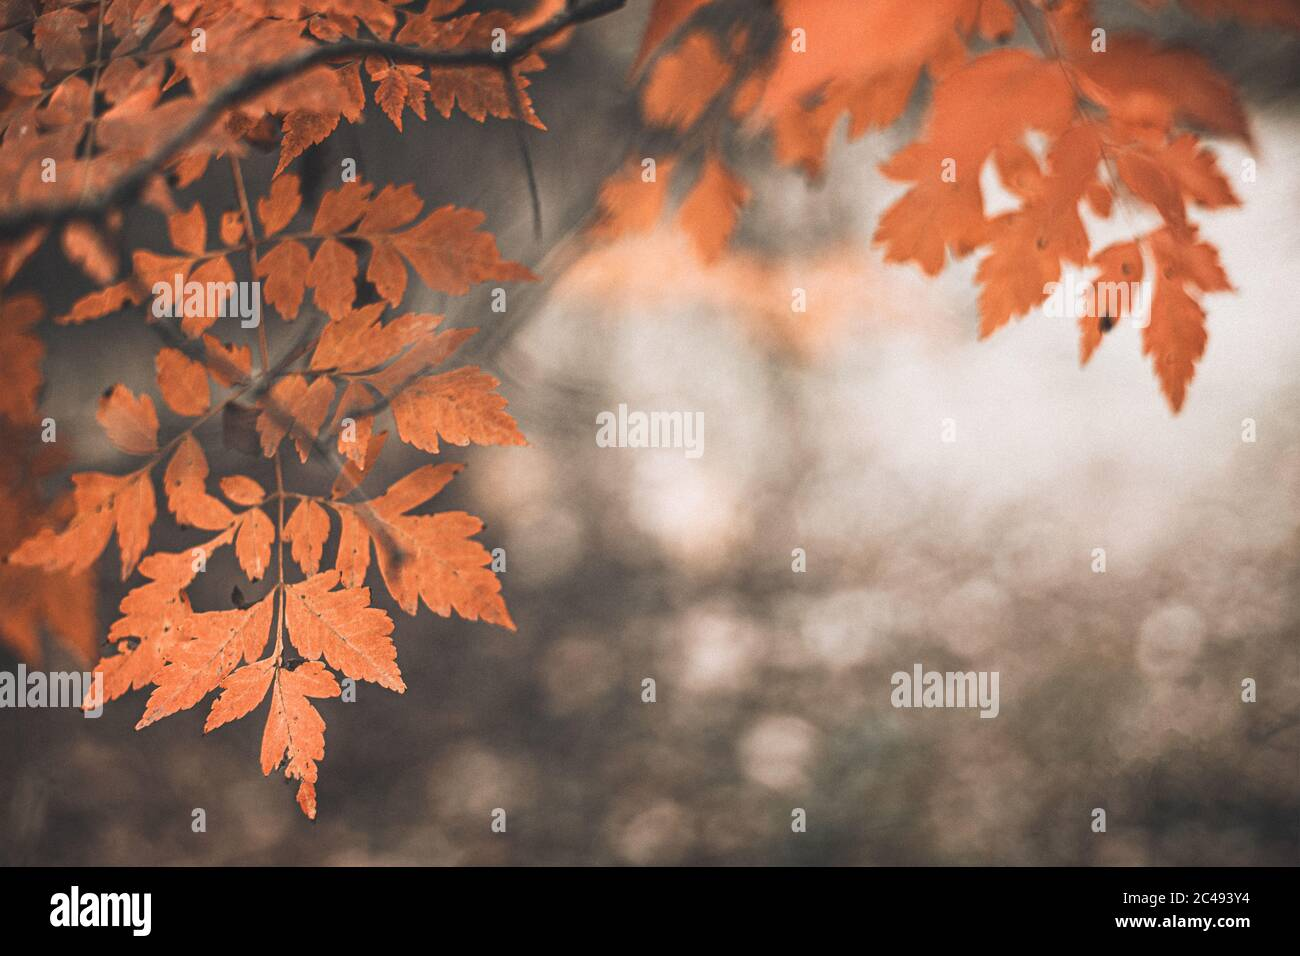 Beautiful Autumn Scene With Orange Leaves And Blurred Brown Branches Great Design For Social Media Seasonal Quotes Vintage Fall Wallpaper Natural Stock Photo Alamy